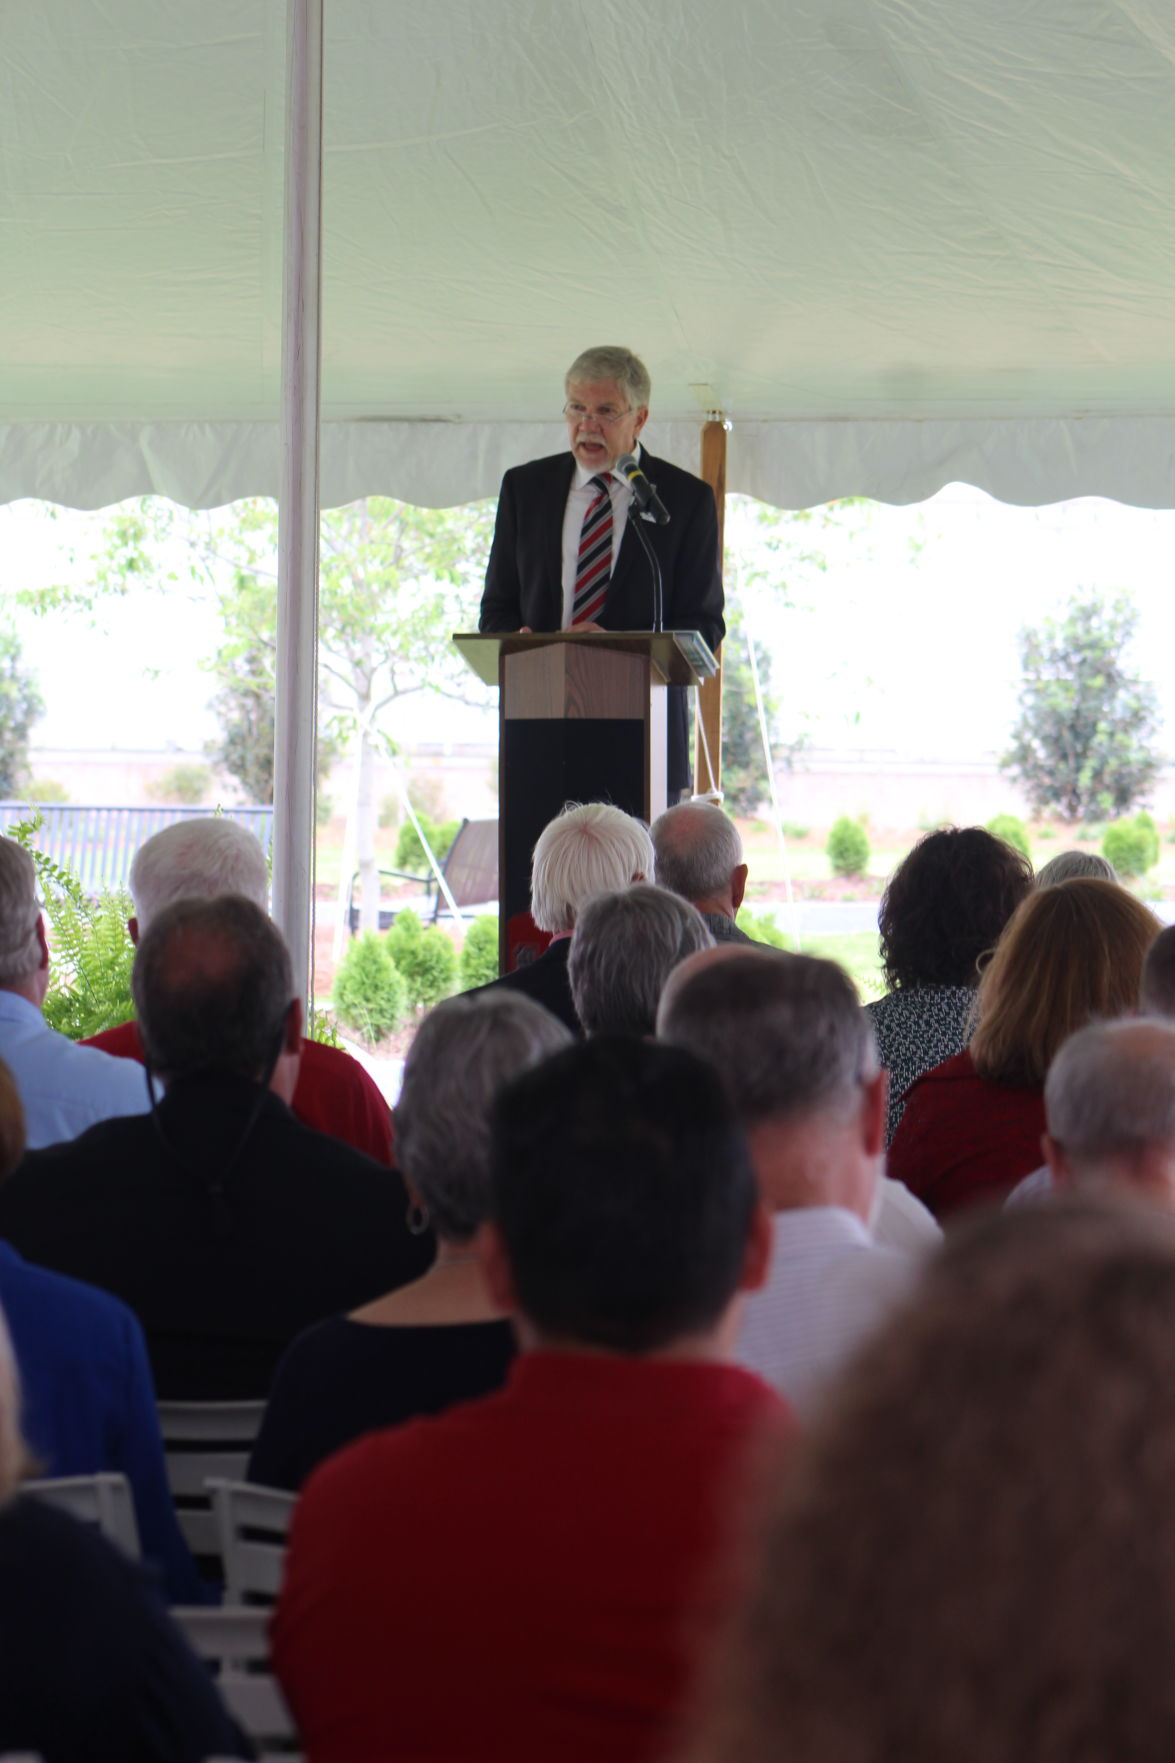 West speaks at the garden ribbon cutting ceremony, which was part of the centennial celebration for the campus.